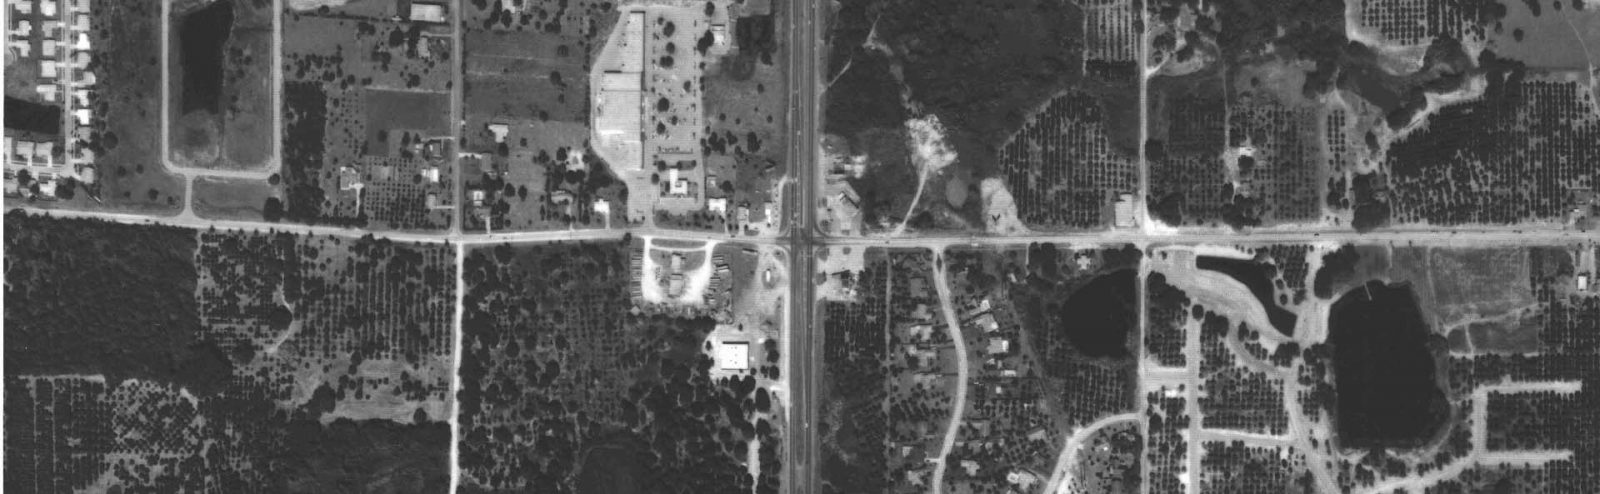 Historic U.S. 19 and Aldermen Road Palm Harbor Florida